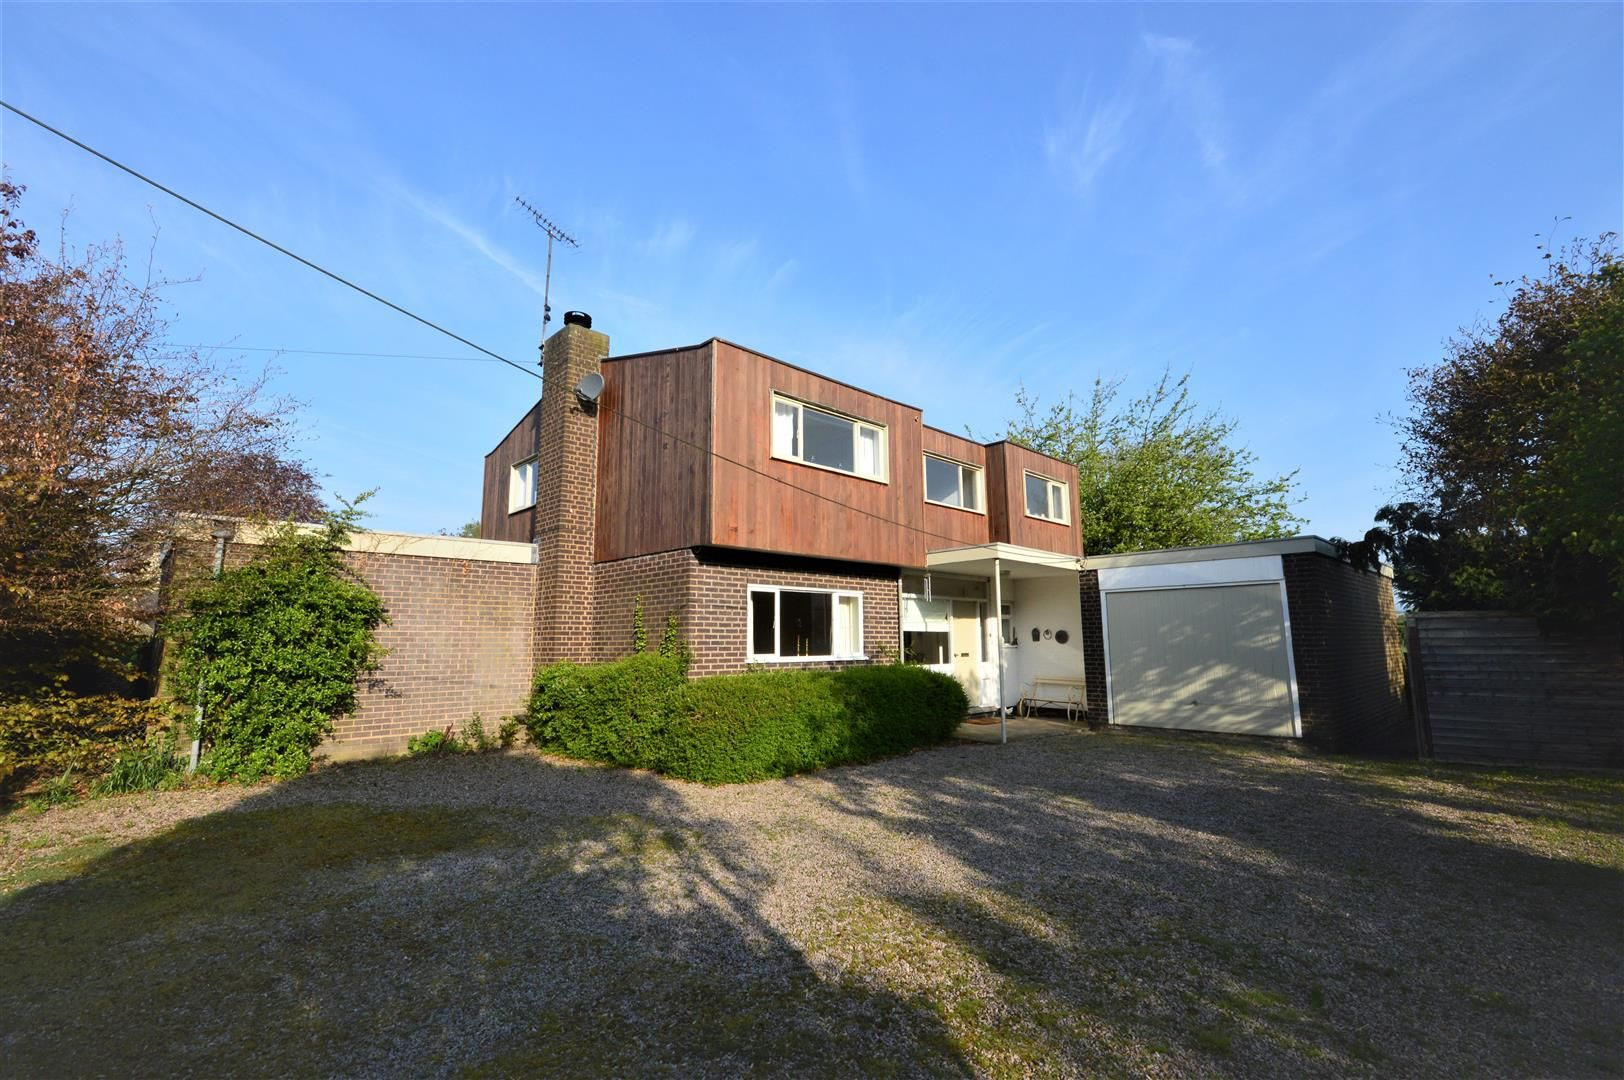 3 bed detached for sale in Eardisland 1